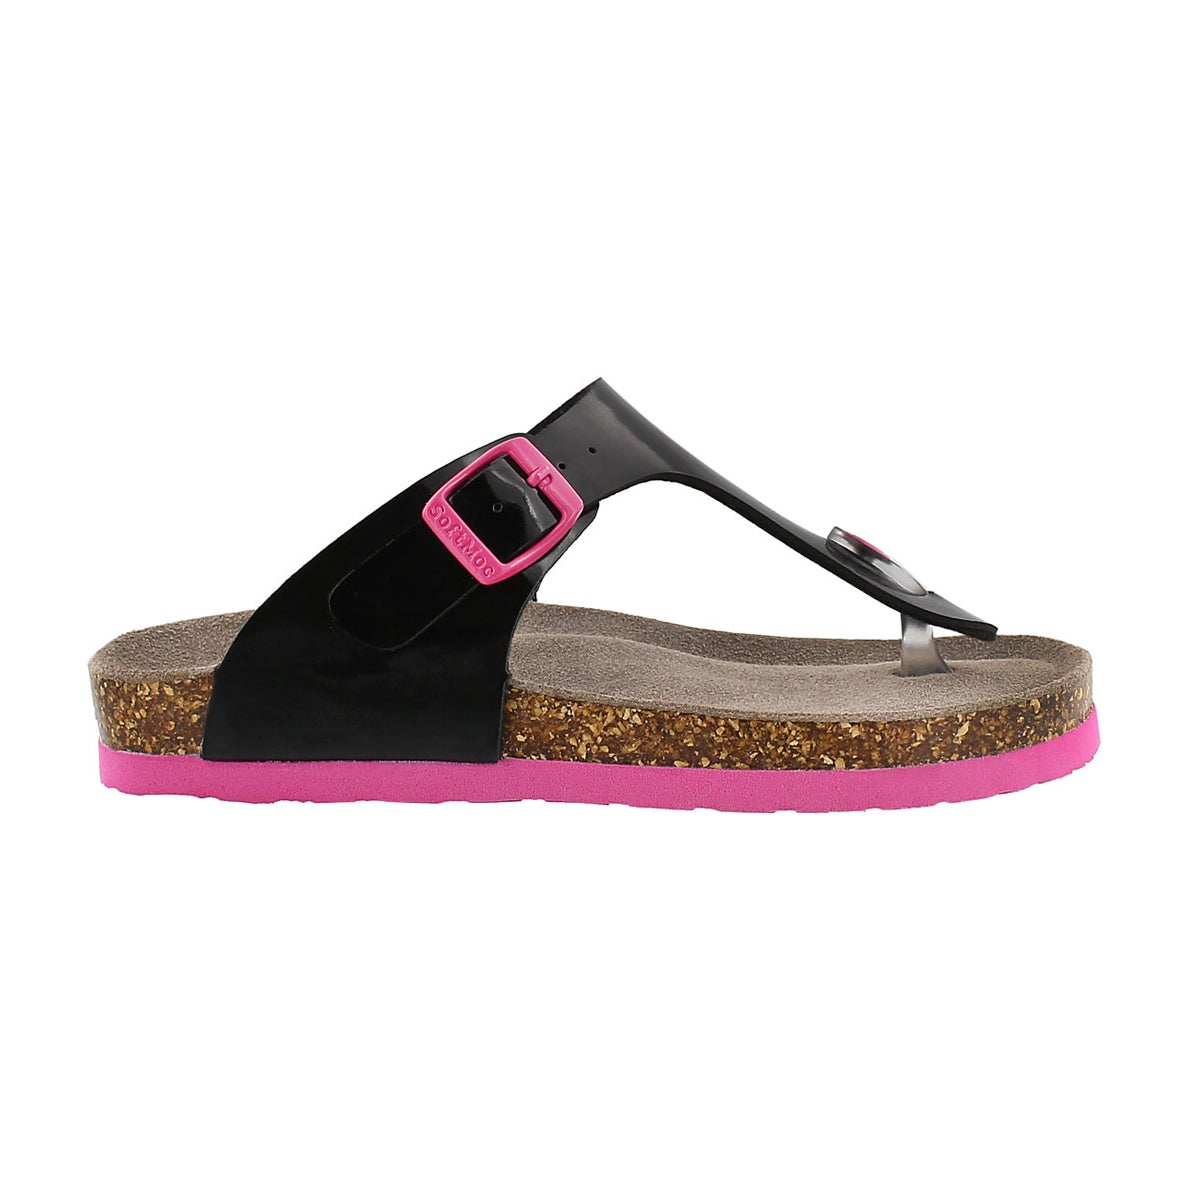 Grls Angy 3 black patent thong sandal